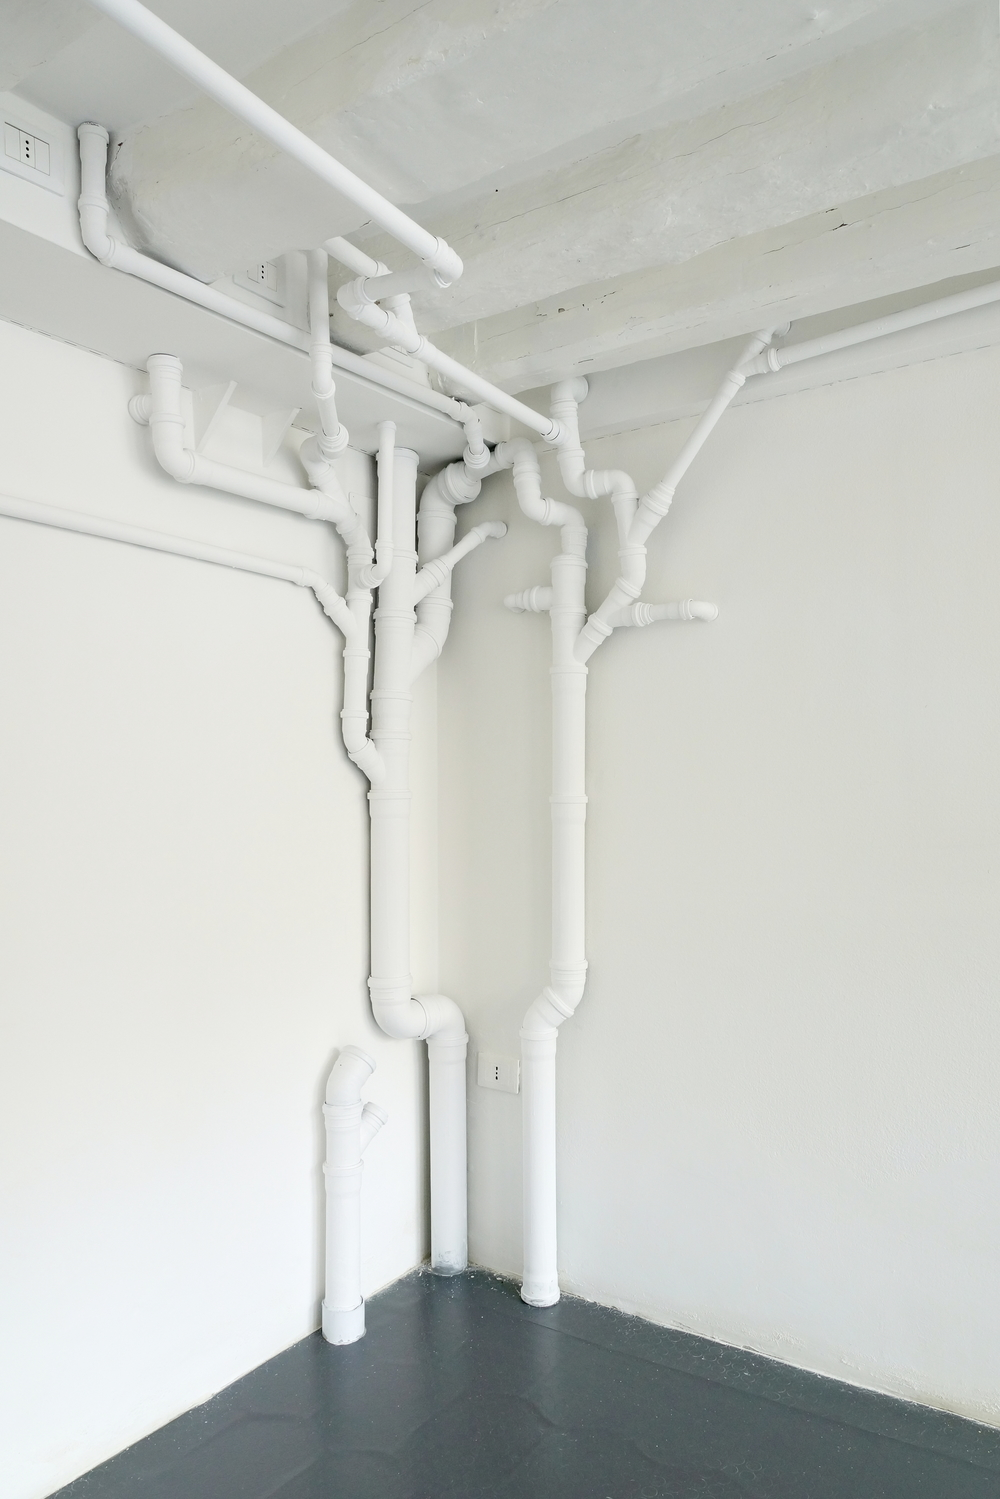 SANITARY INSTALLATION (2013) PVC pipe and connections, paint. 300X400X220 cm variable